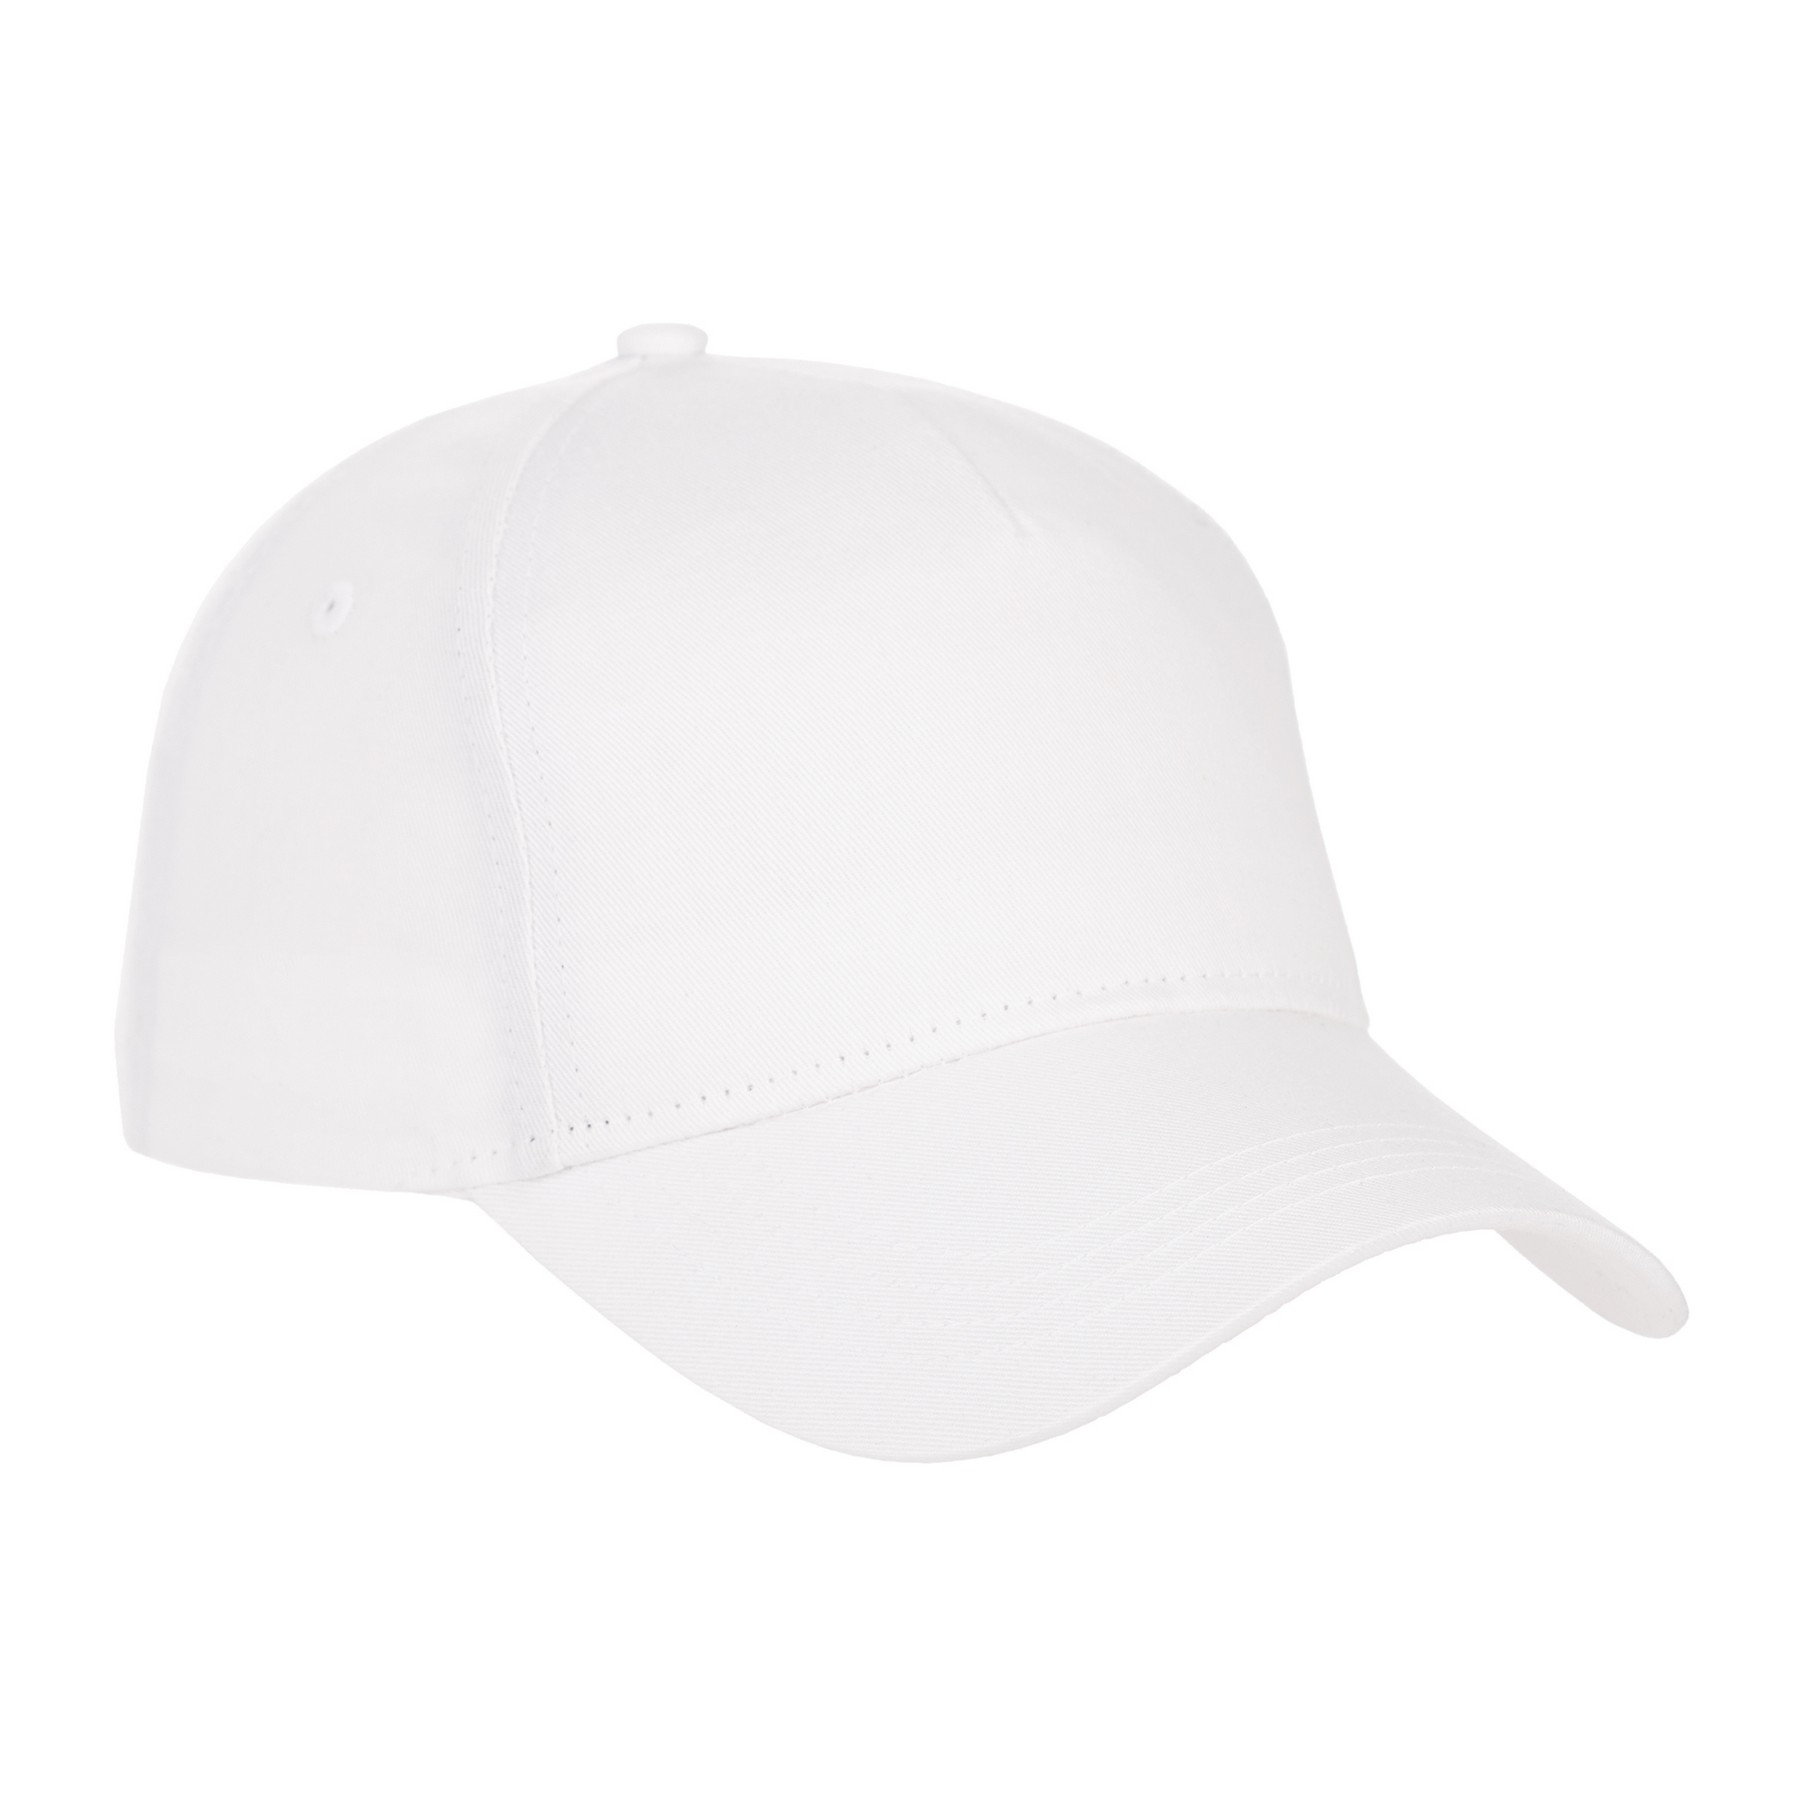 Composite Ballcap, #32022 - Embroidered